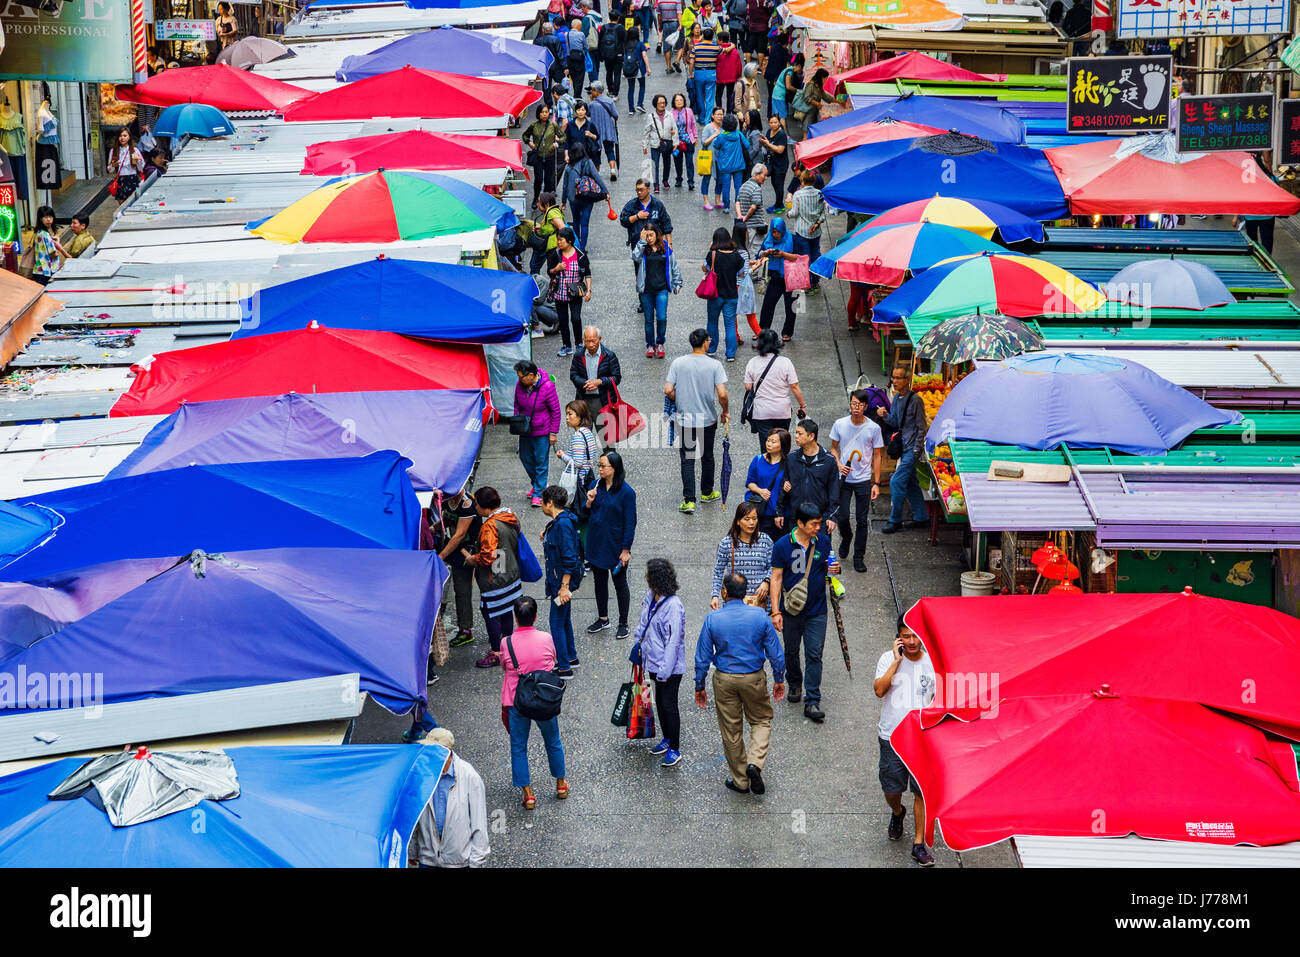 HONG KONG, CHINA - APRIL 27: This is an aerial view of Fa Yuen street market a busy local street market which is - Stock Image